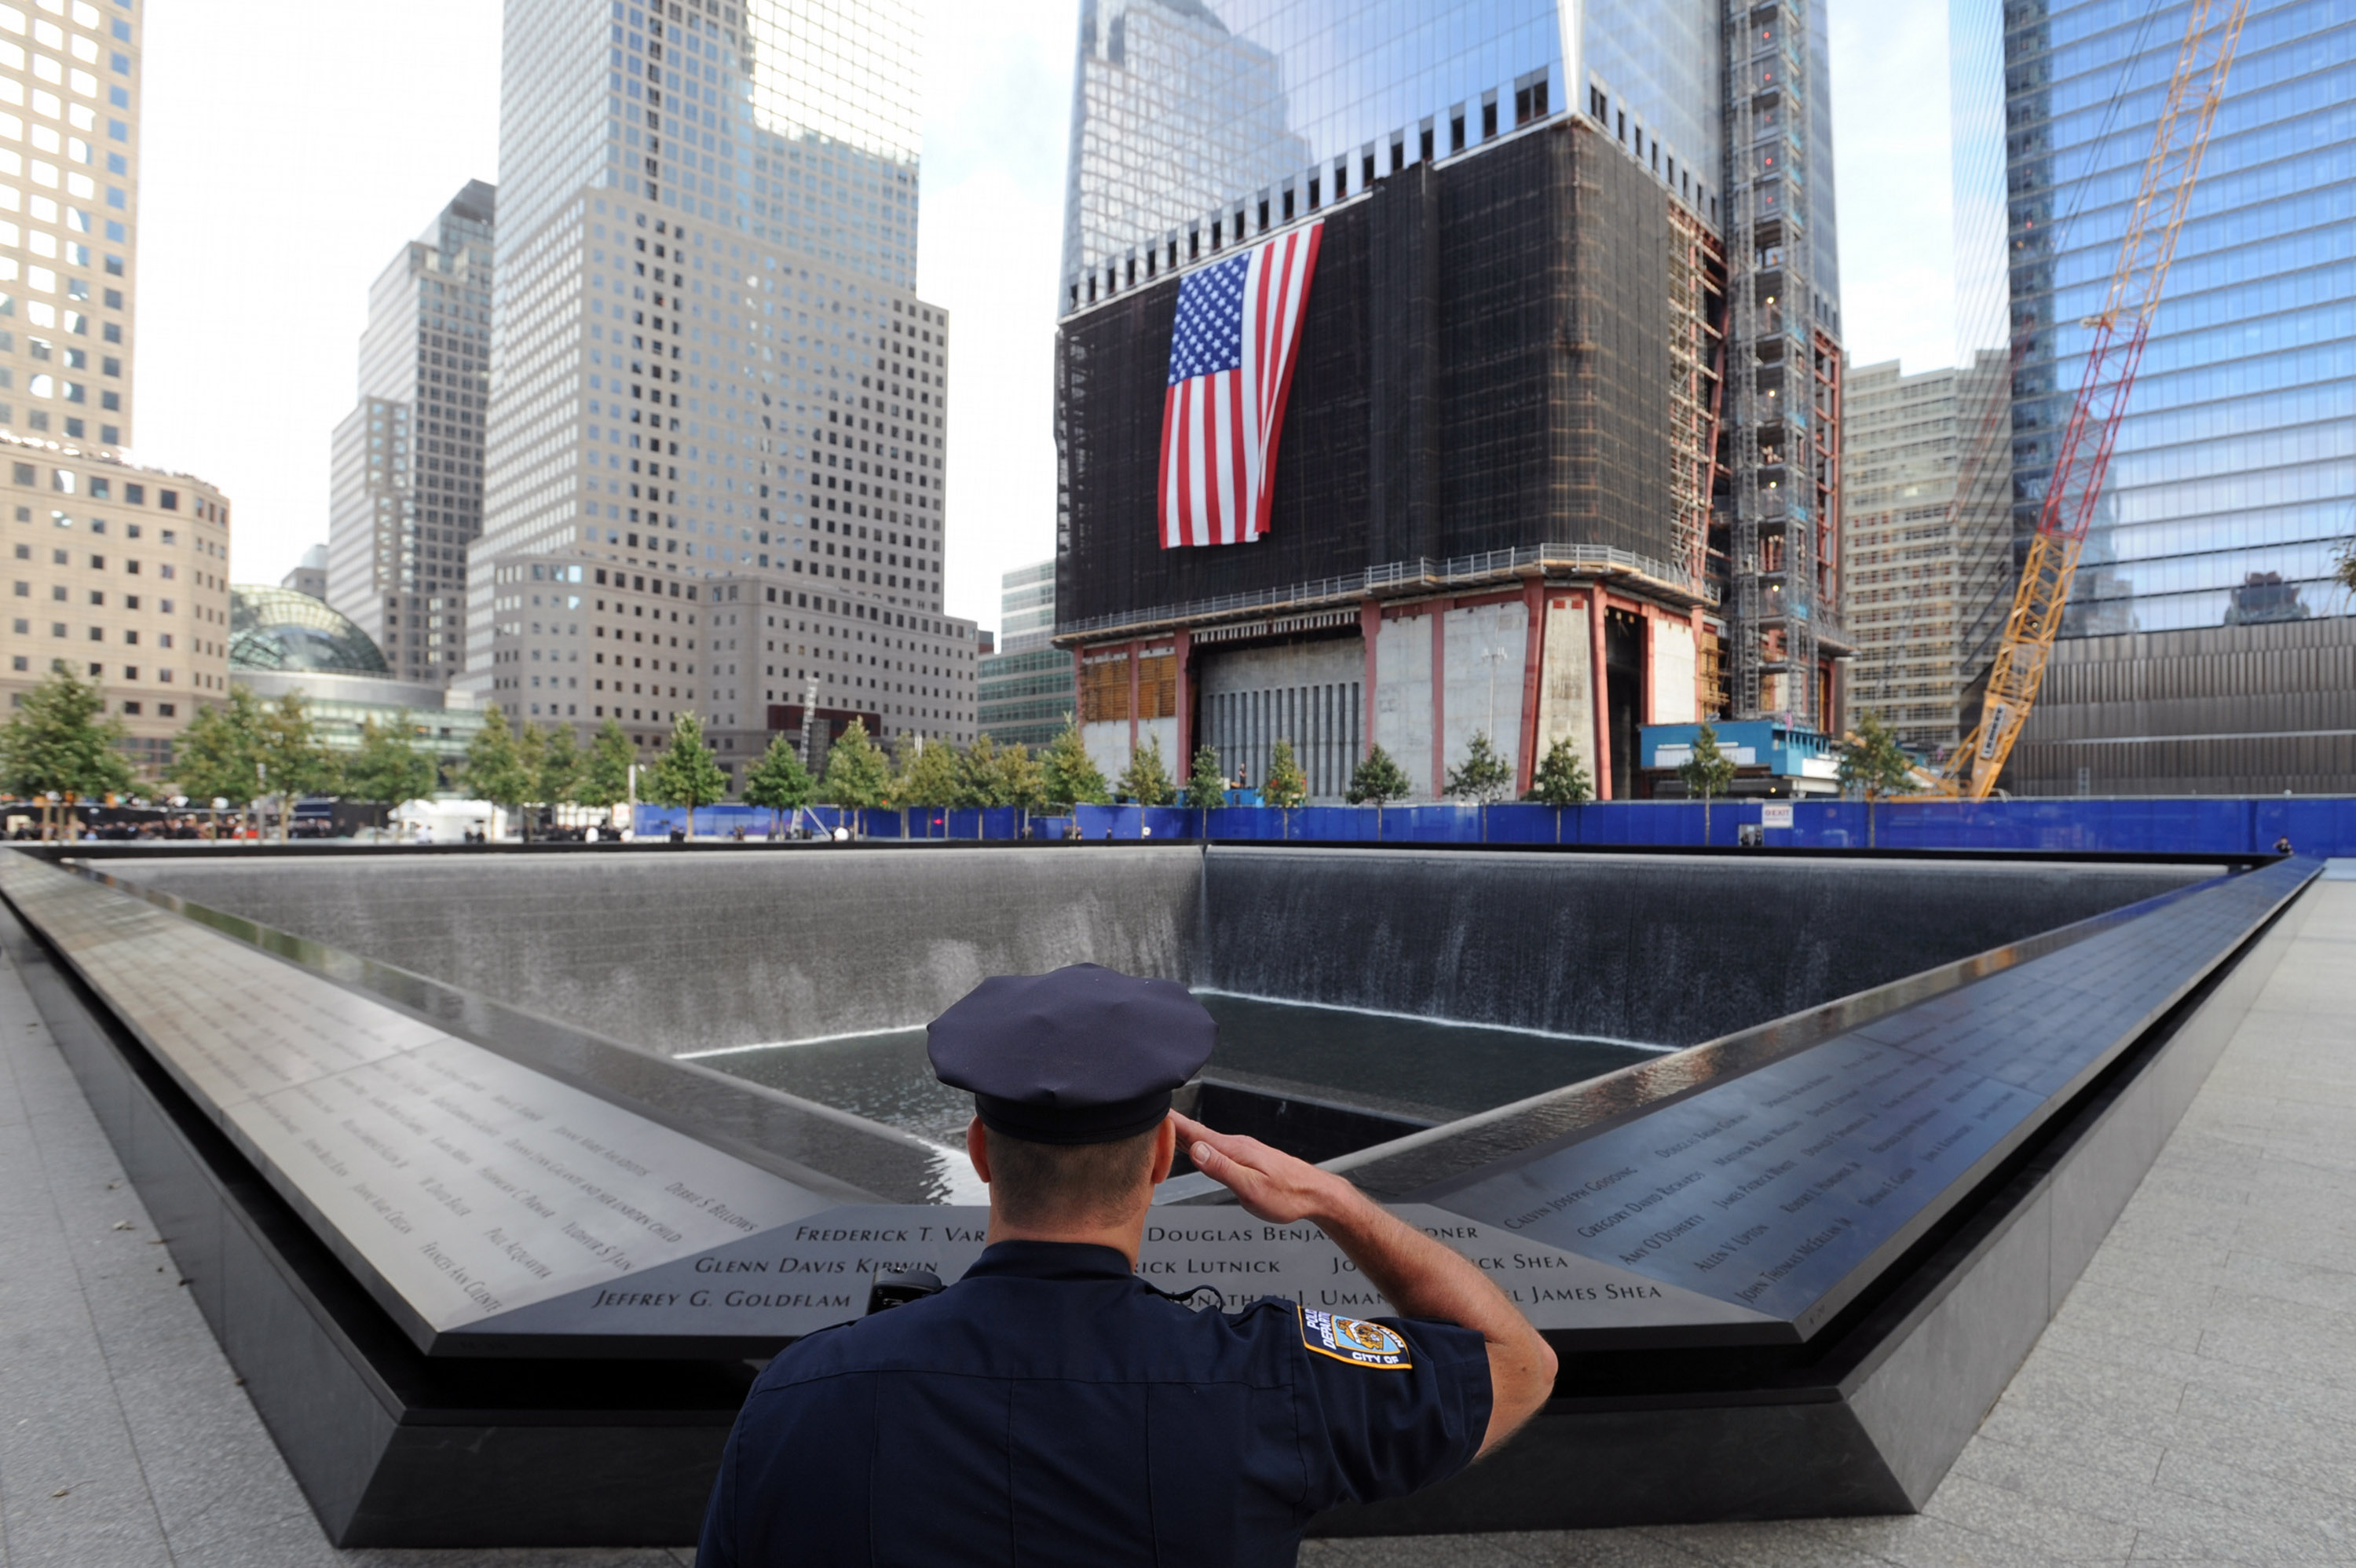 9 11 anniversary 2015 quotes from sept 11 2001 attacks and after